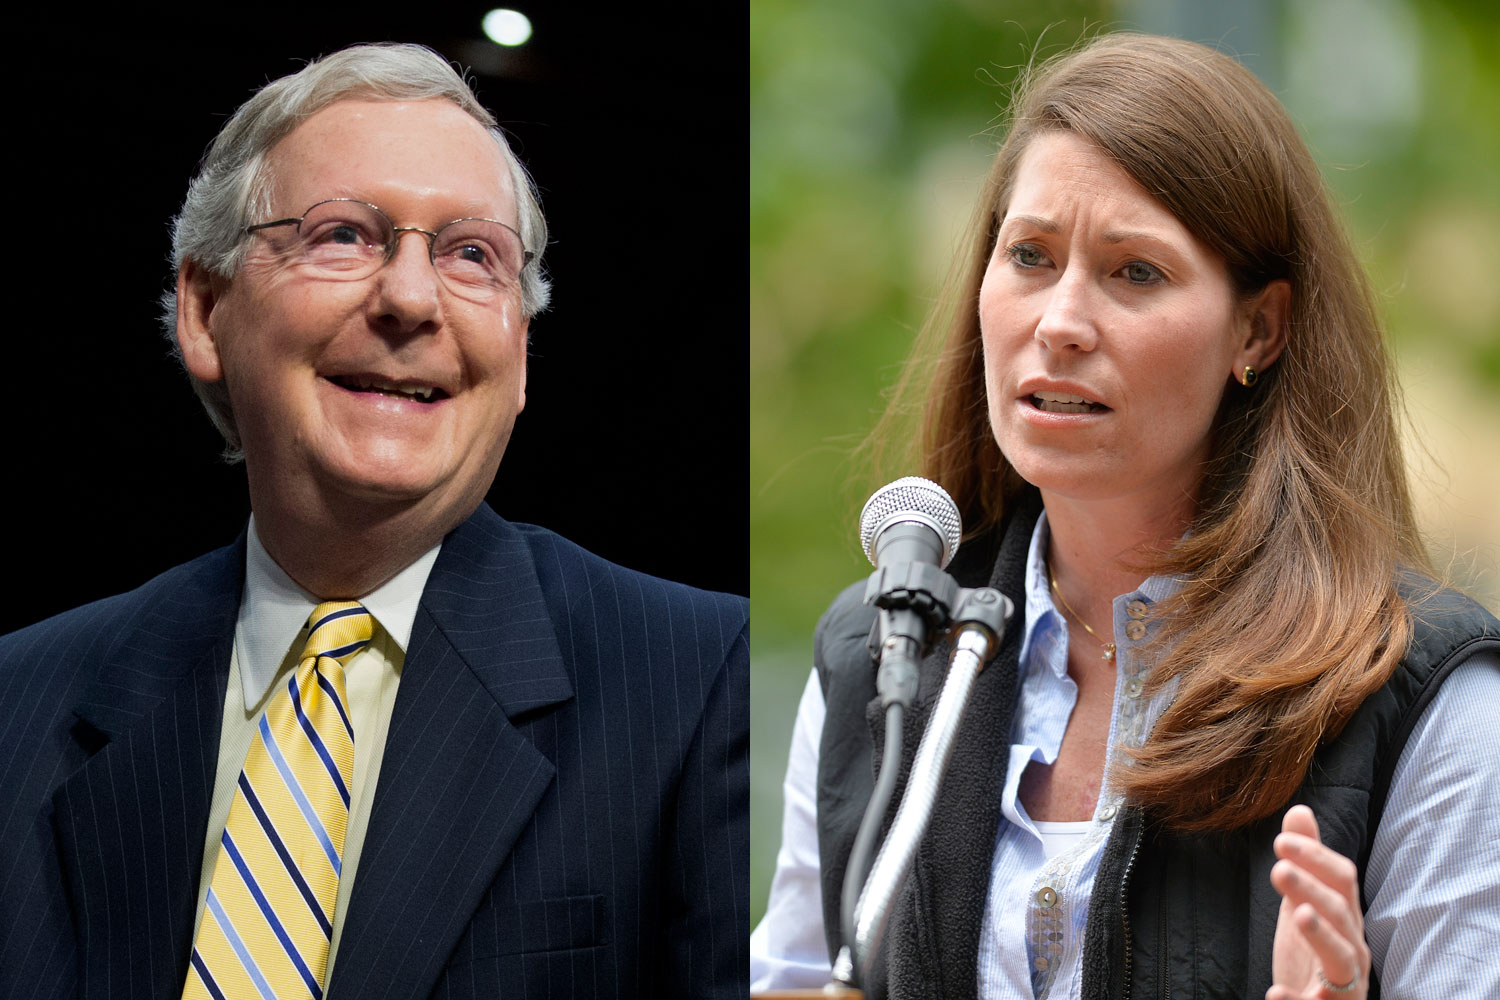 Mitch-McConnell-and-Alison-Lundergan-Grimes